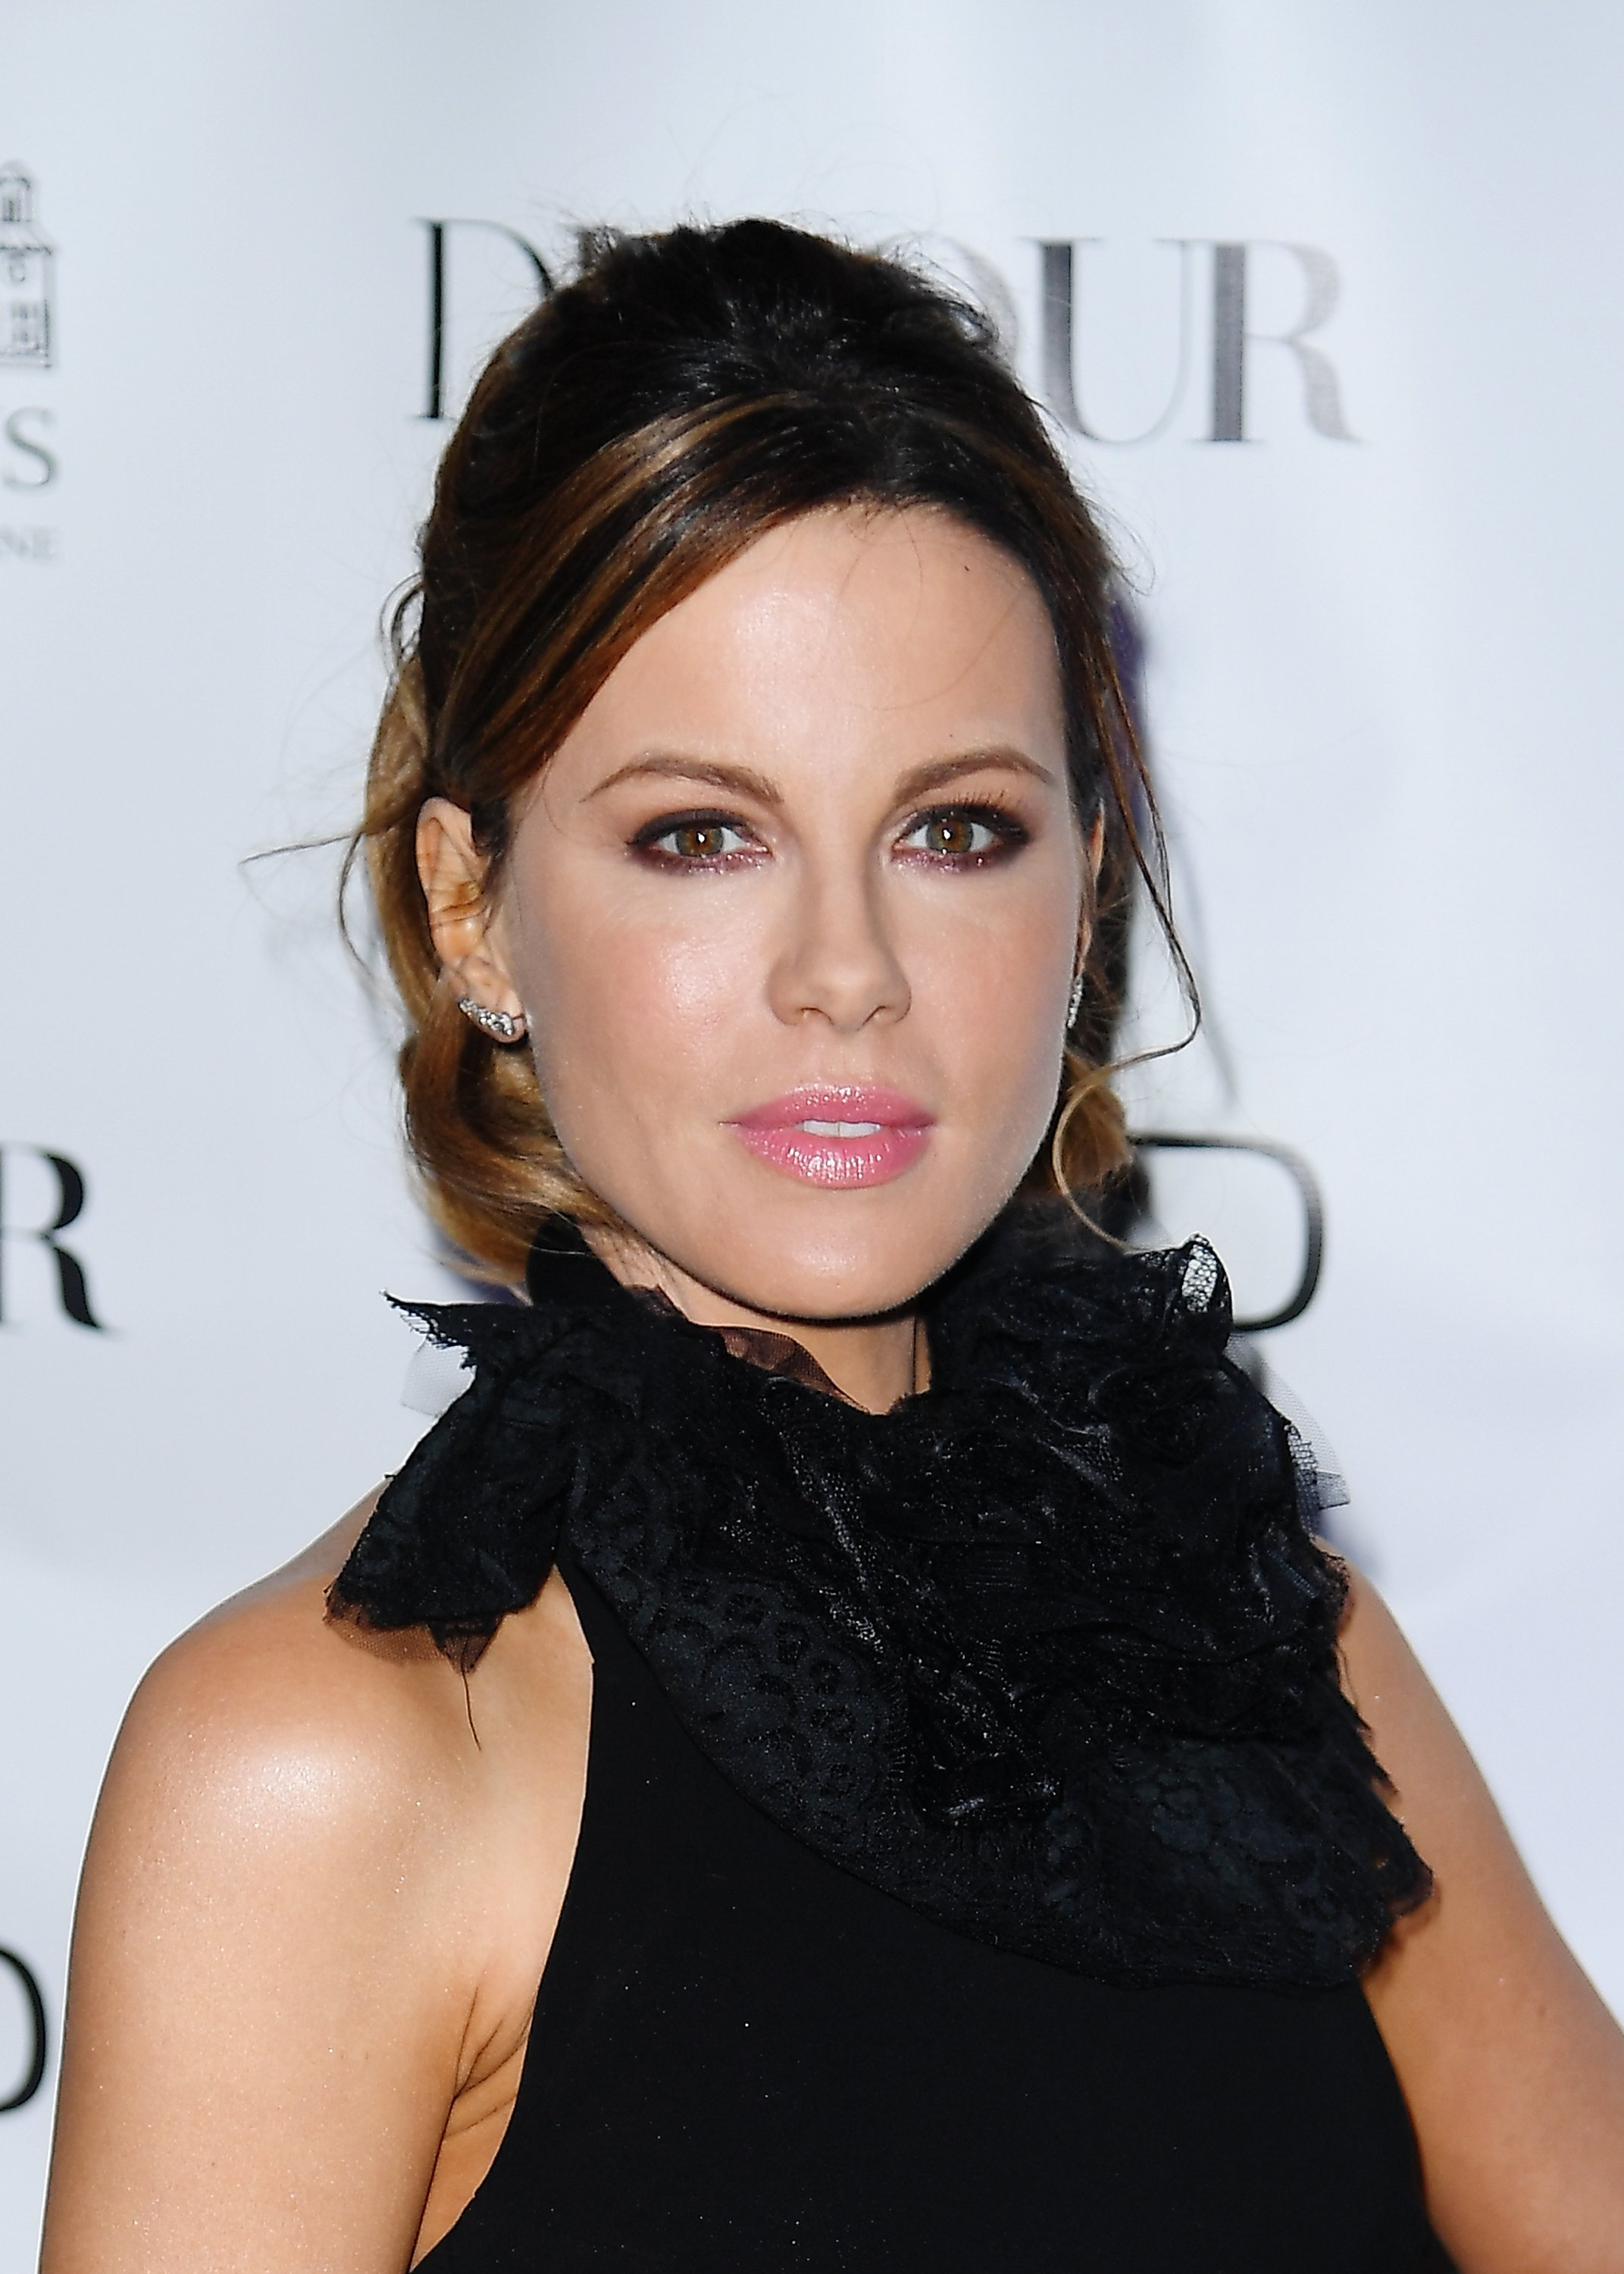 Actress Kate Beckinsale celebrates DuJour Magazine's spring issue cover at PHD Rooftop Lounge at Dream Downtown on February 28, 2019 in New York City   Photo: Getty Images